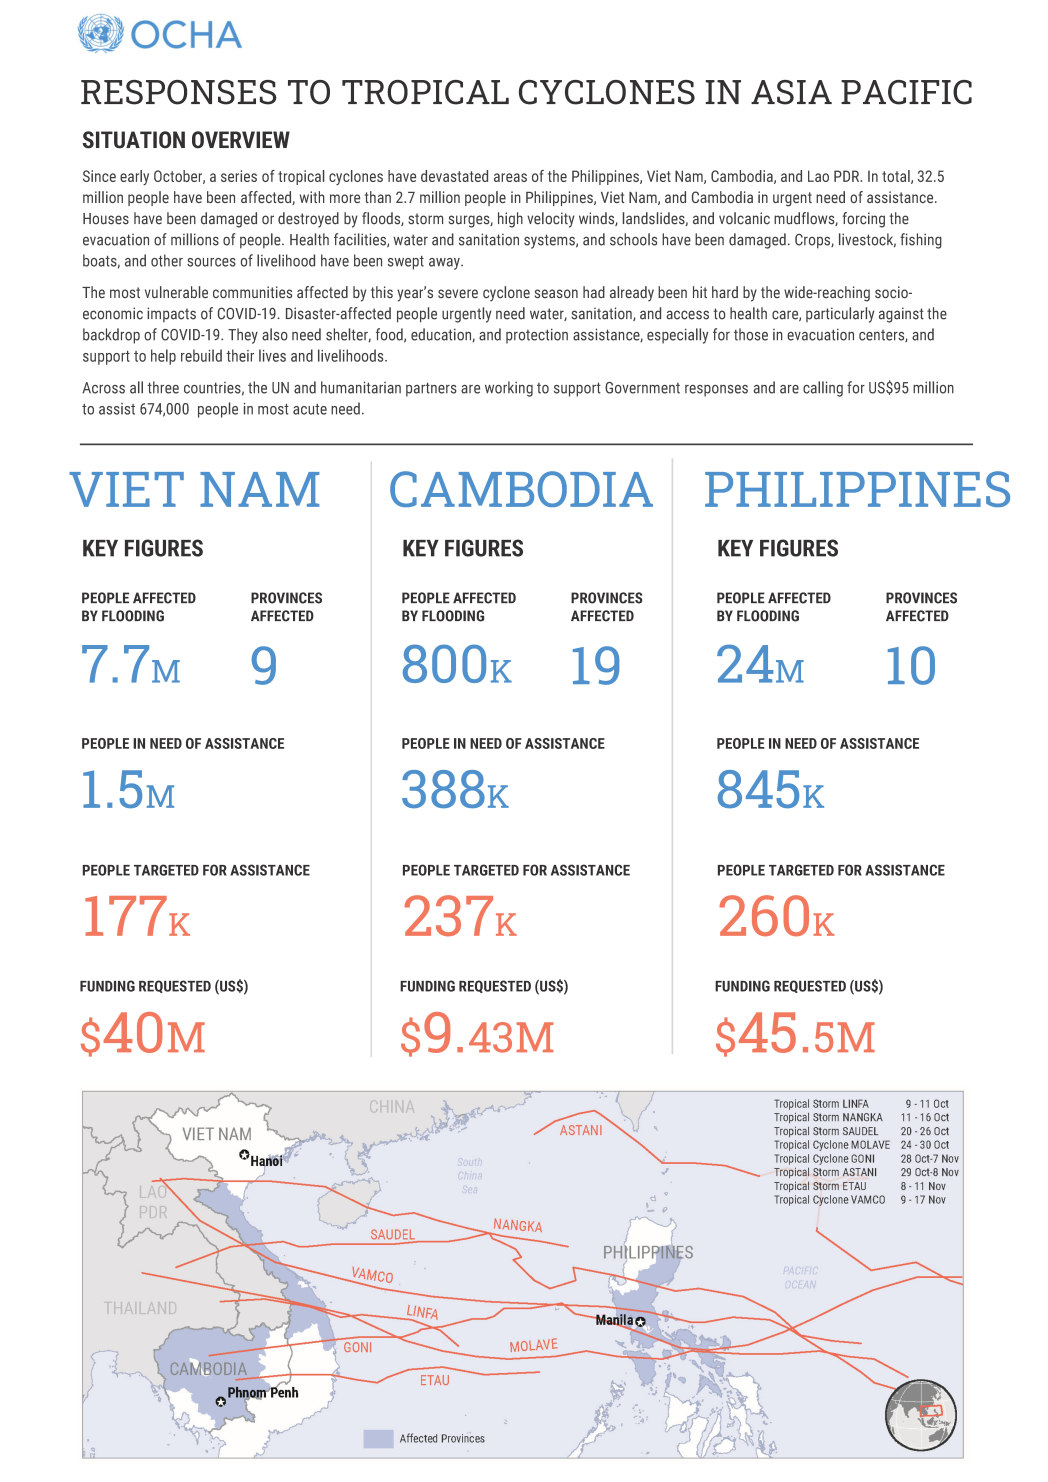 Typhoons Cyclones Floods Asia Pacific Humanitarian Responses Philippines Vietnam Cambodia LaoPDR OCHA 13Nov2020